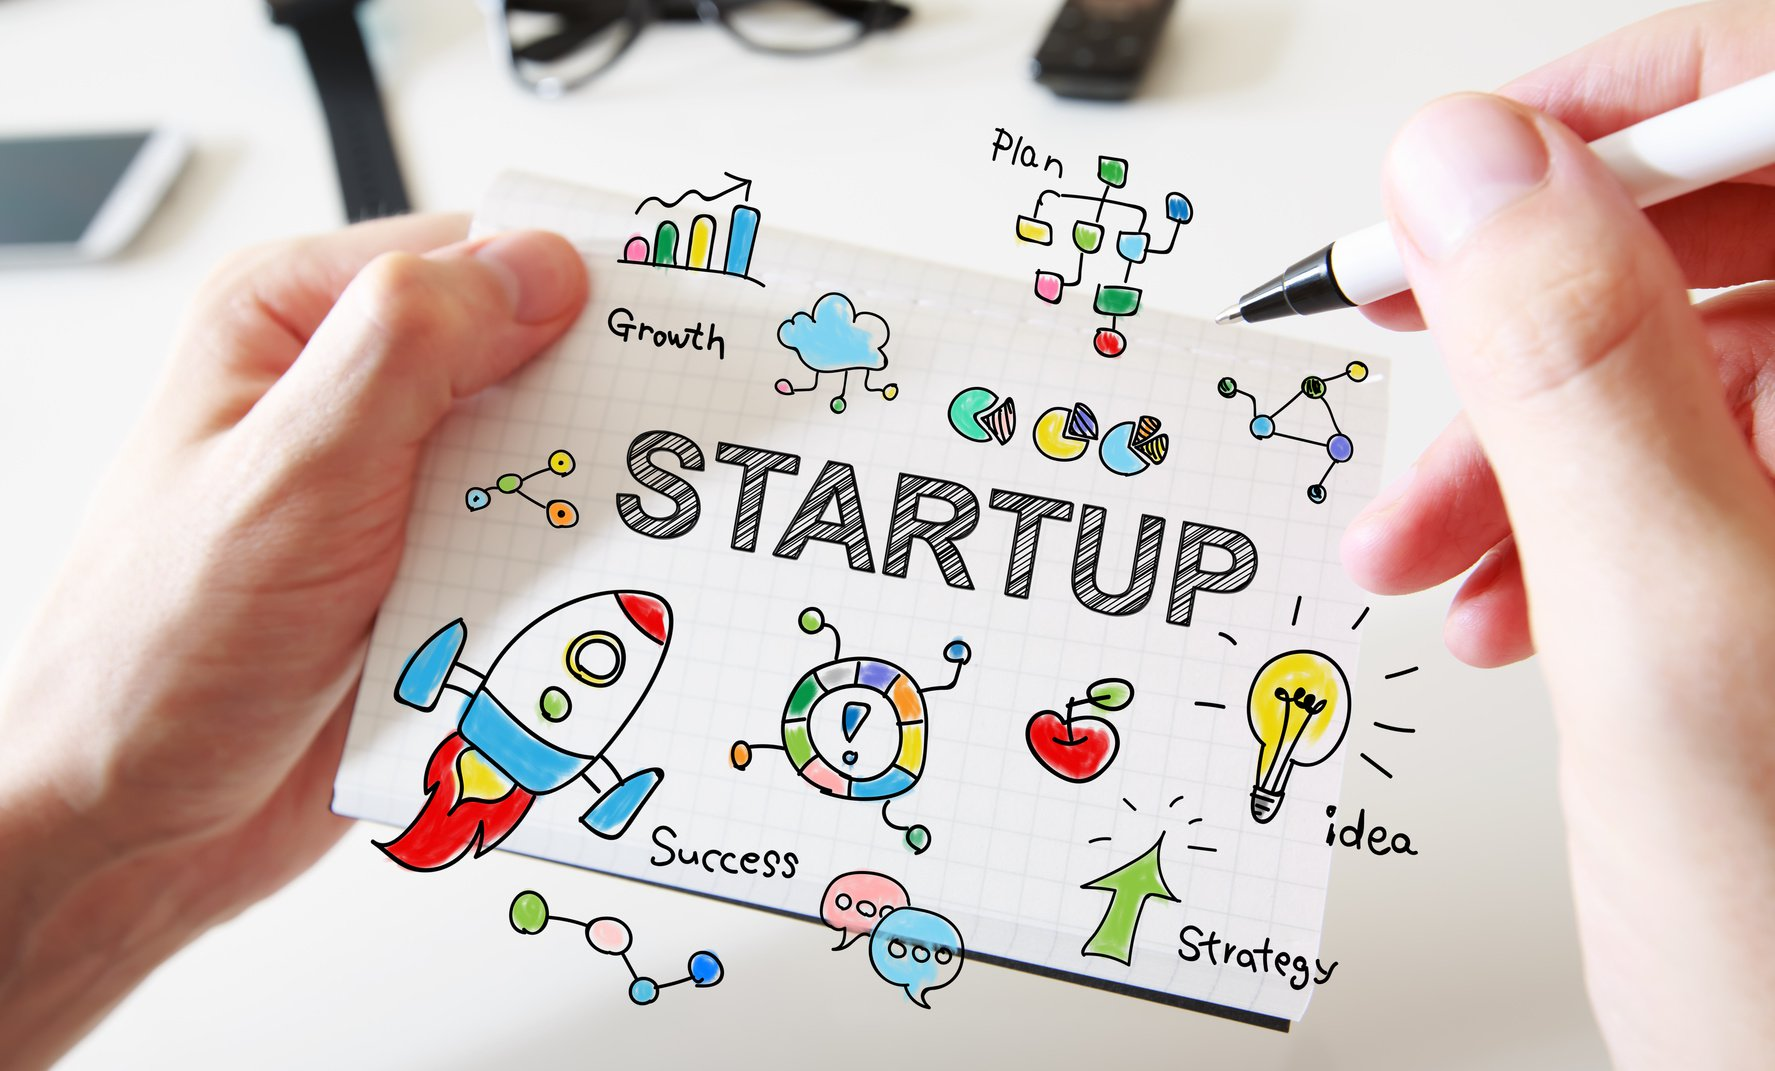 How To Lead Your Own Startup Business